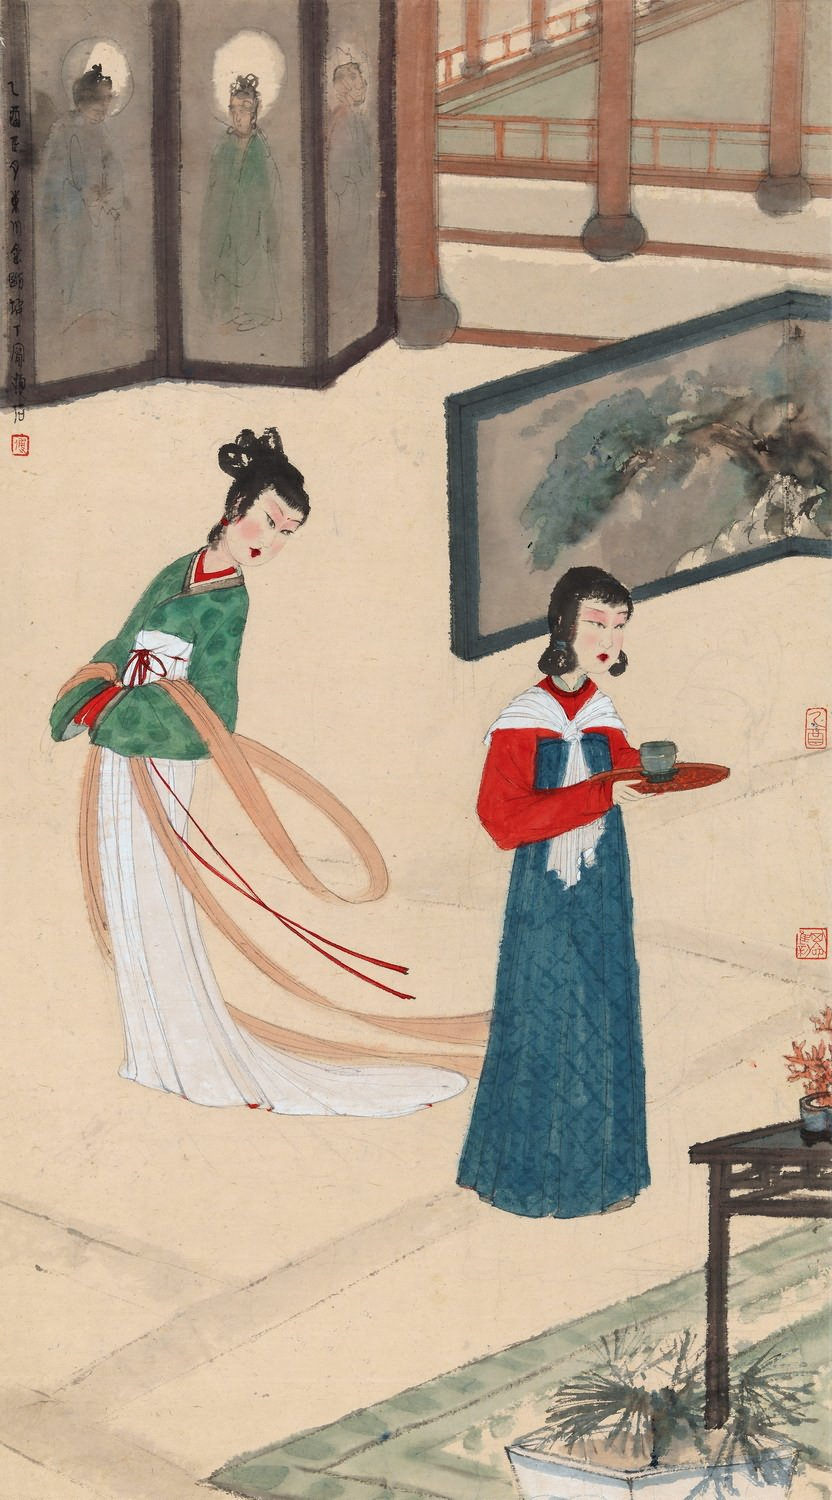 Highlights of Calligraphy and Paintings from the 2016 Autumn Auctions